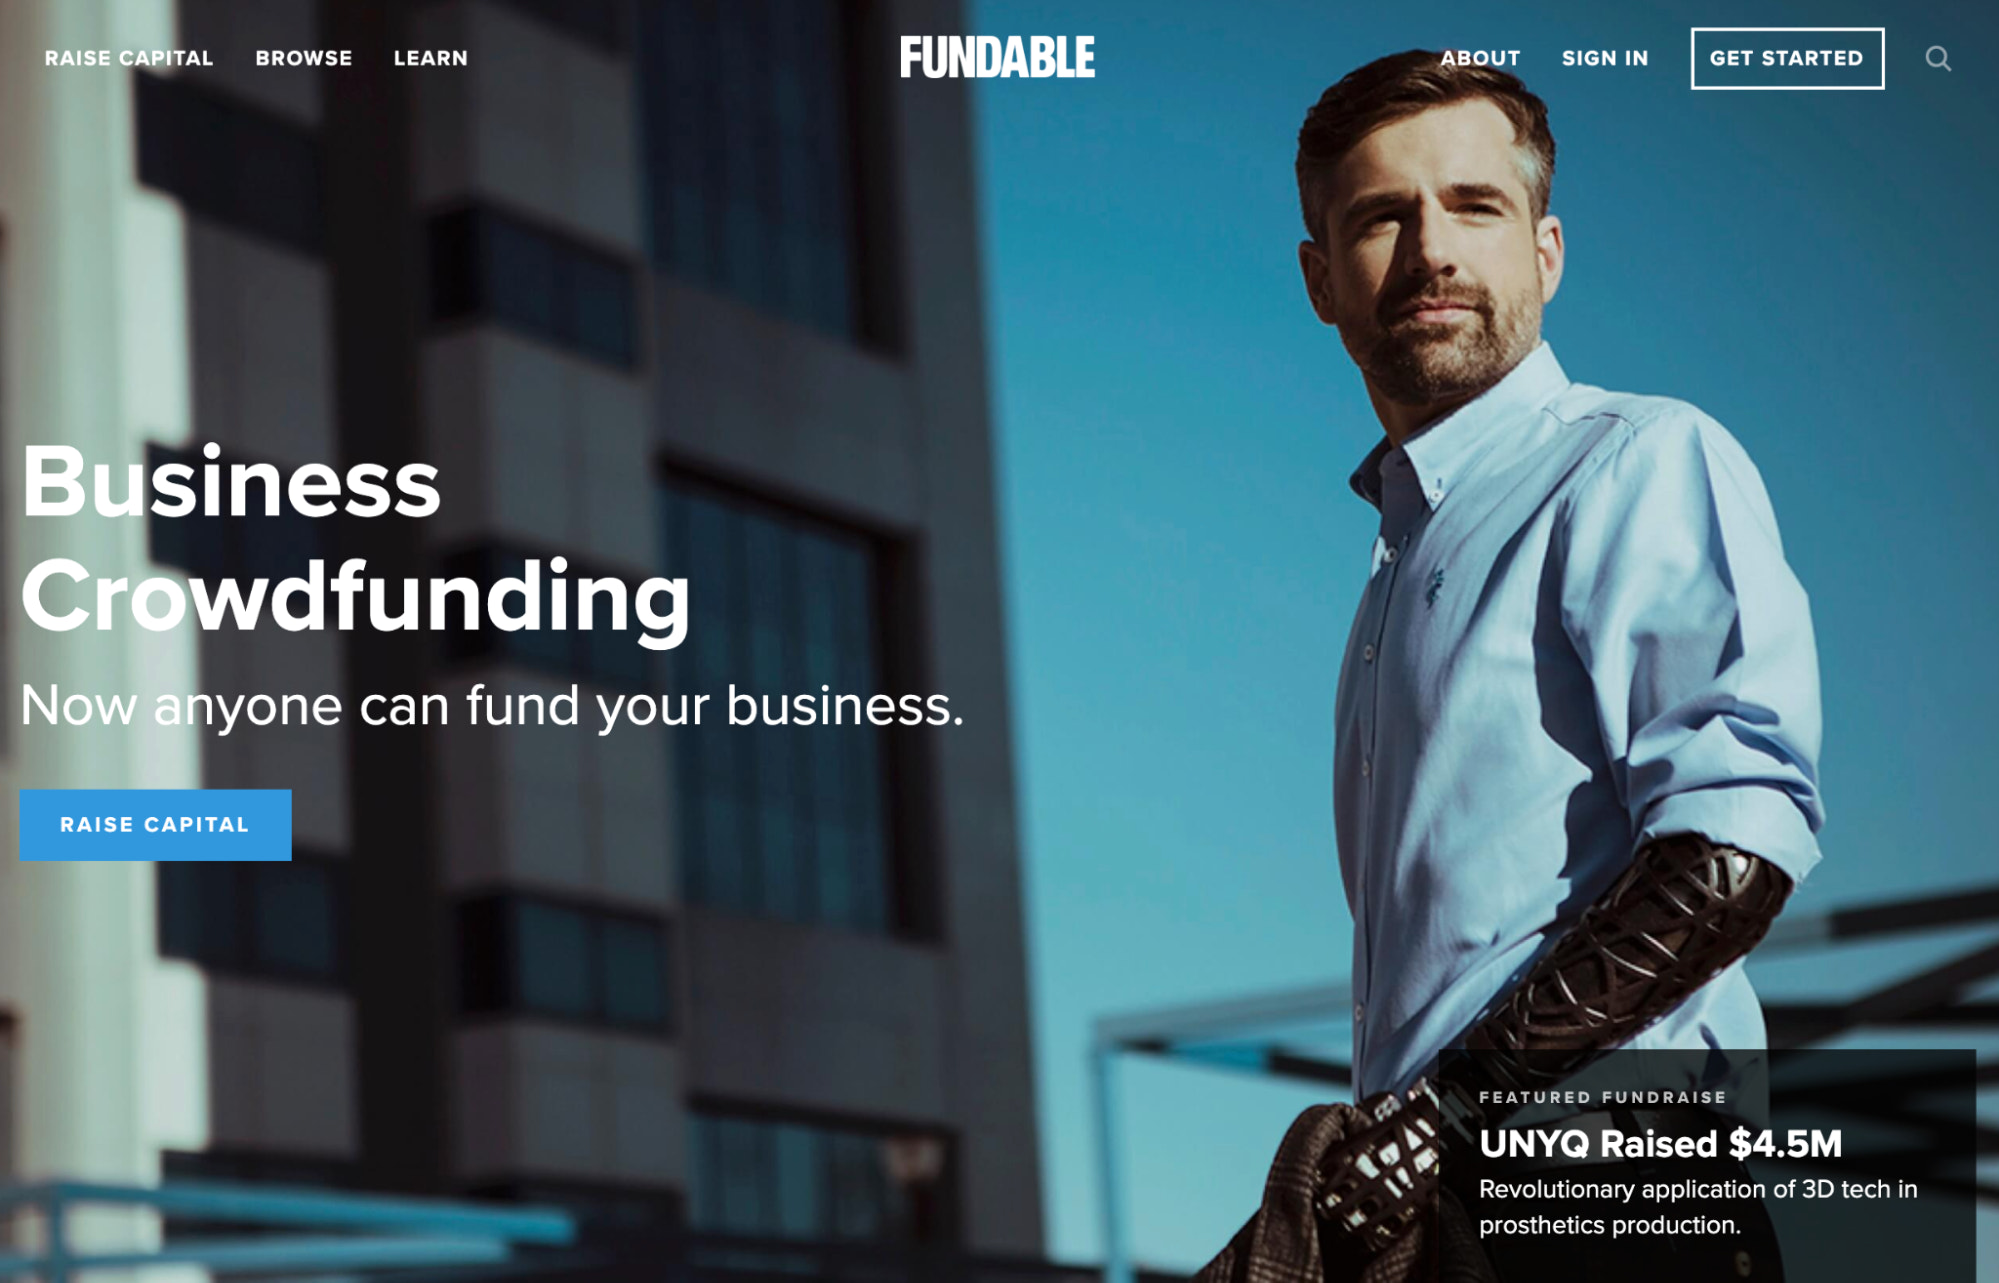 fundable crowdfunding site